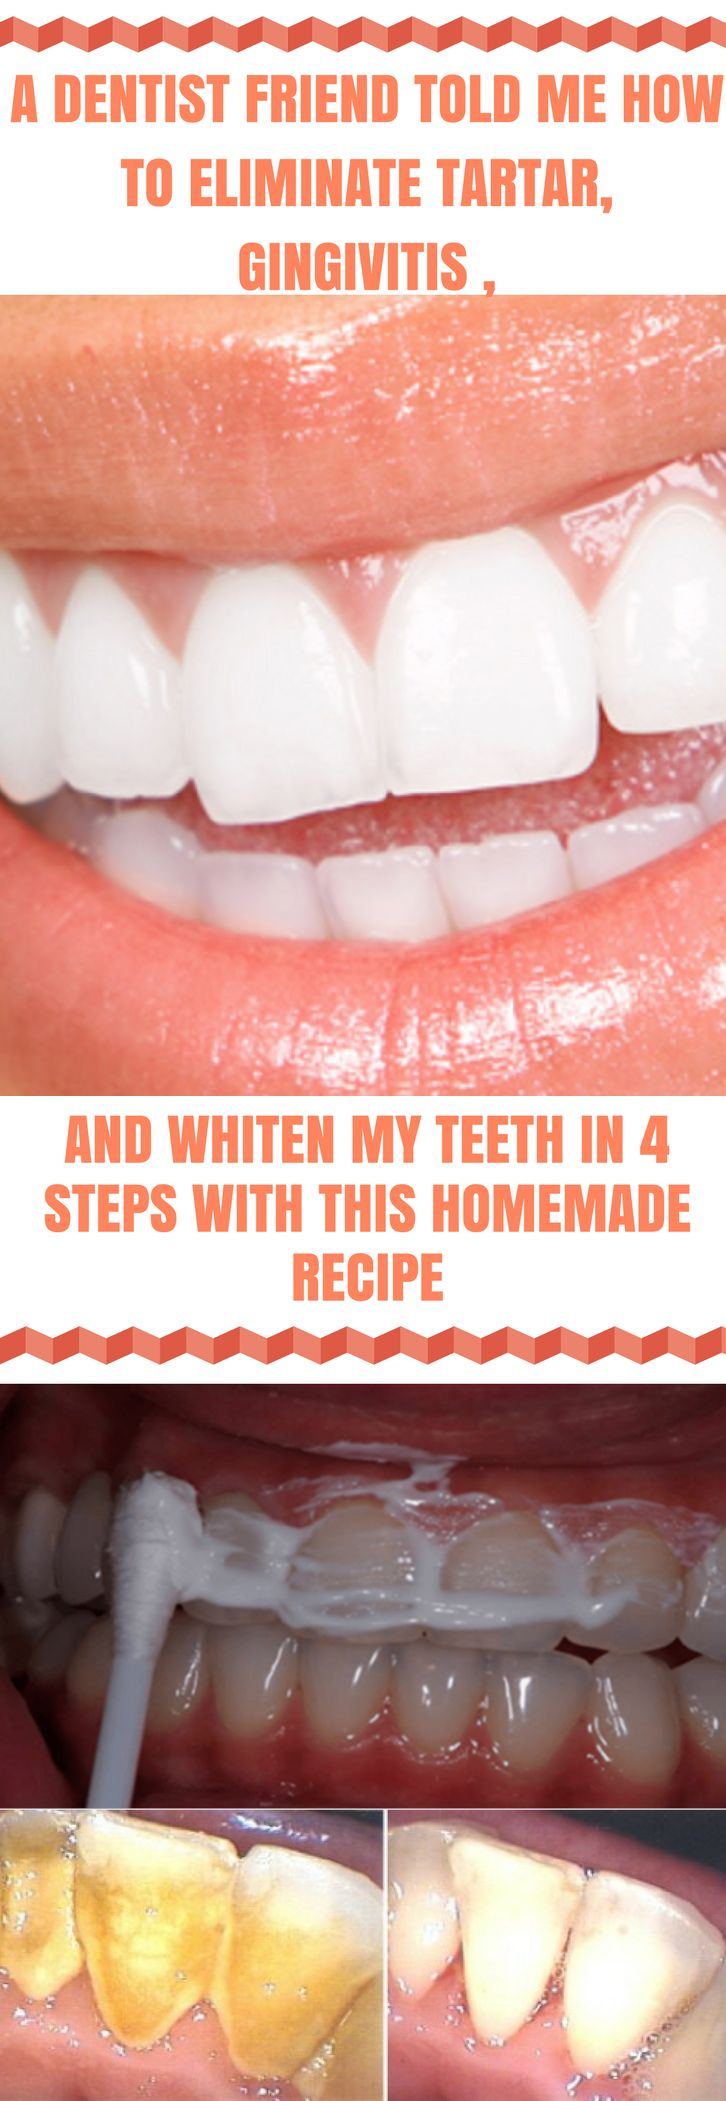 A Dentist Friend Told Me How To Eliminate Tartar Gingivitis and Whiten My Teeth In 4 Steps With This Homemade Recipe